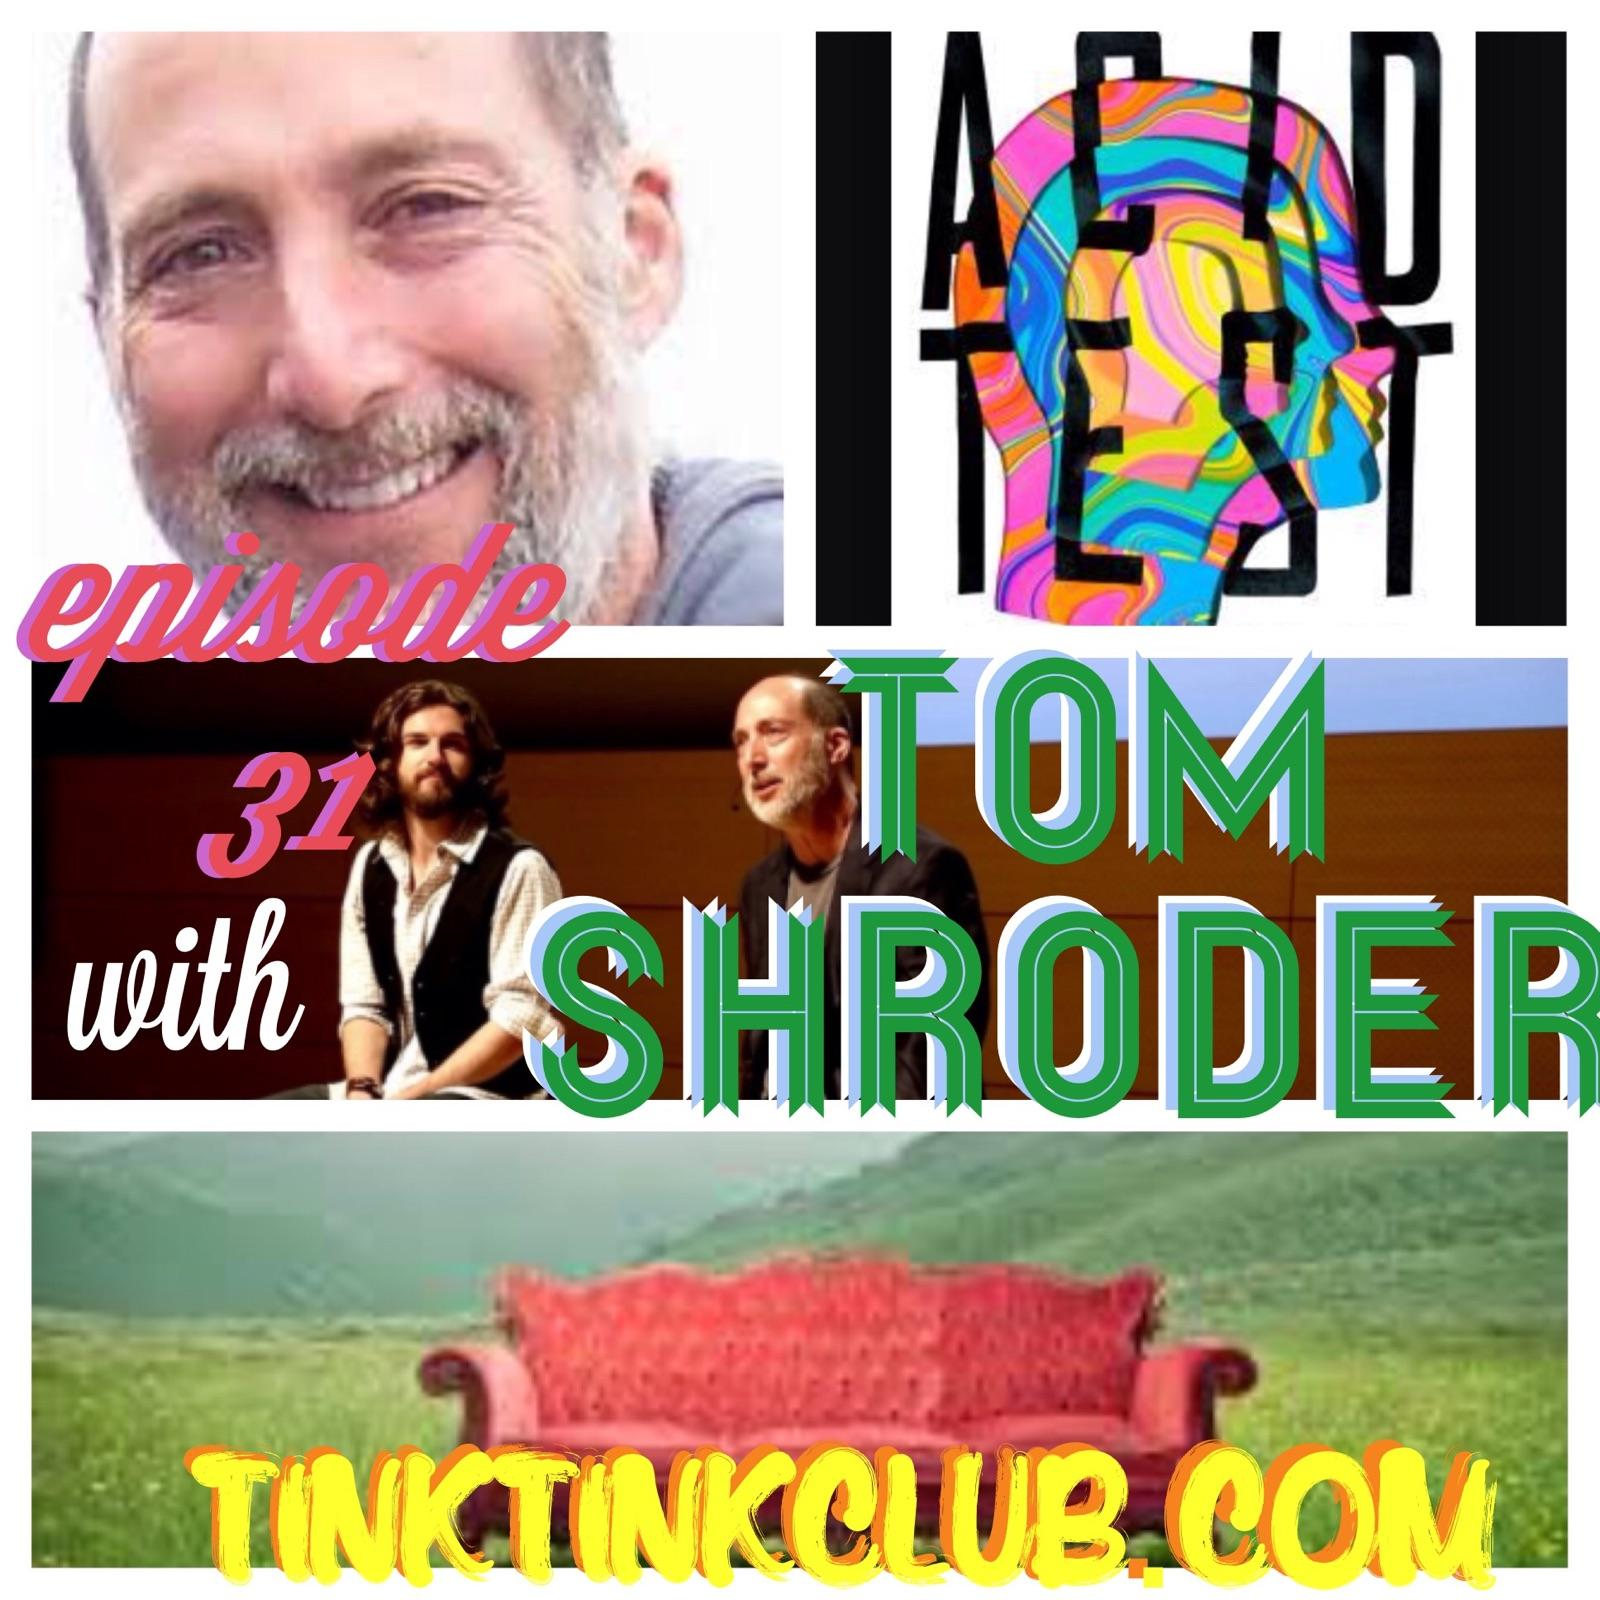 Tom Shroder